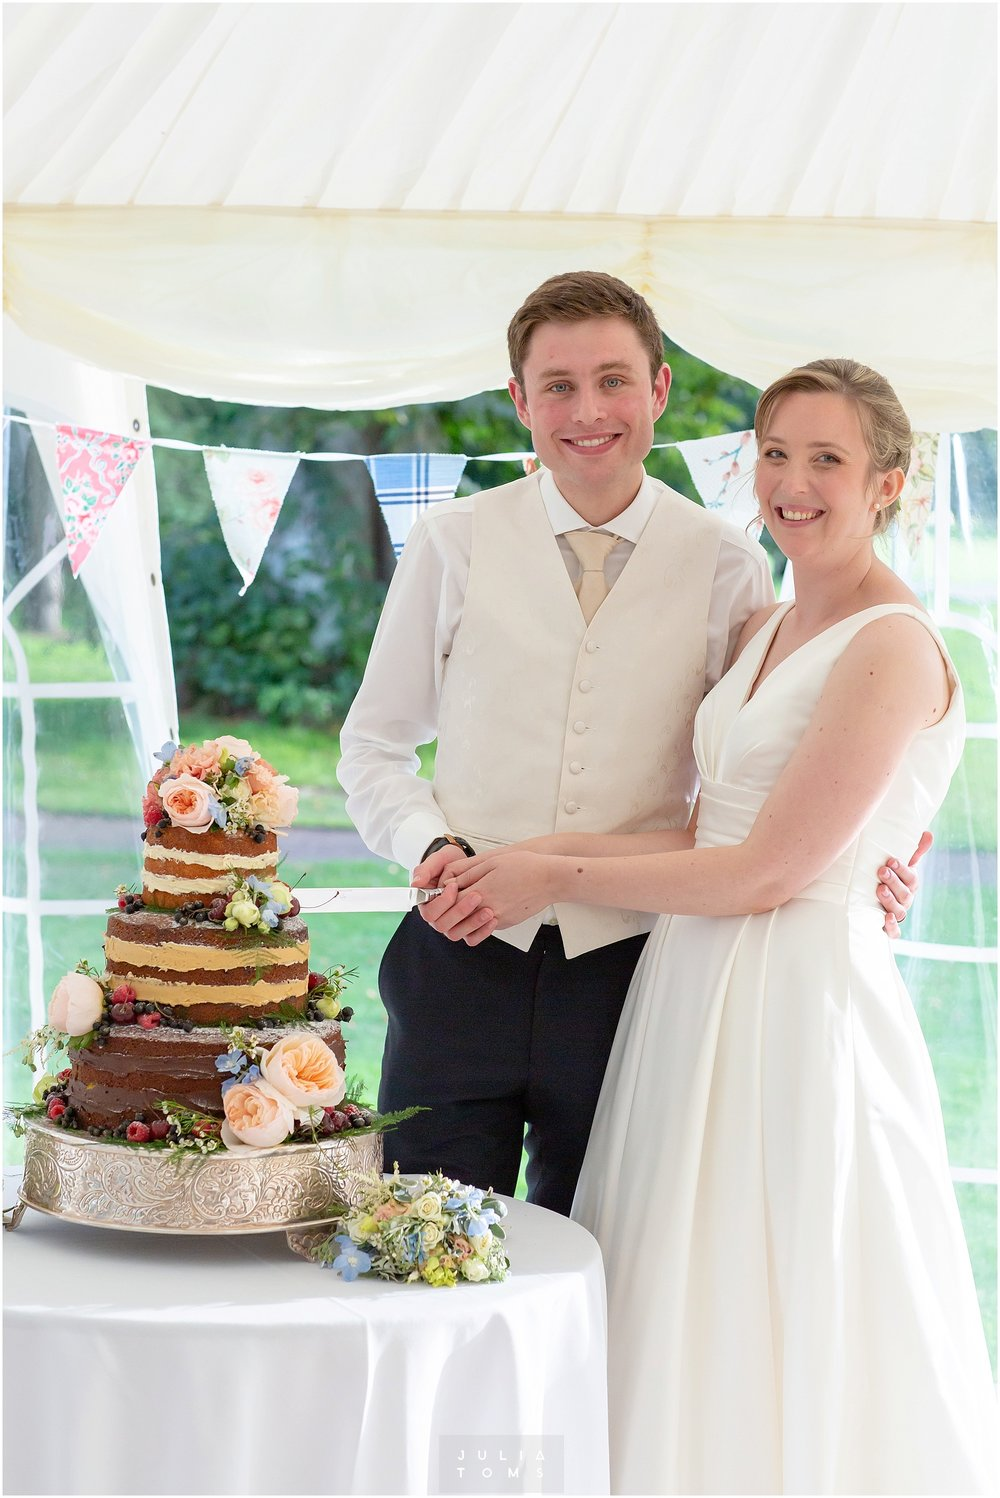 westsussex_wedding_photographer_westdean_131.jpg